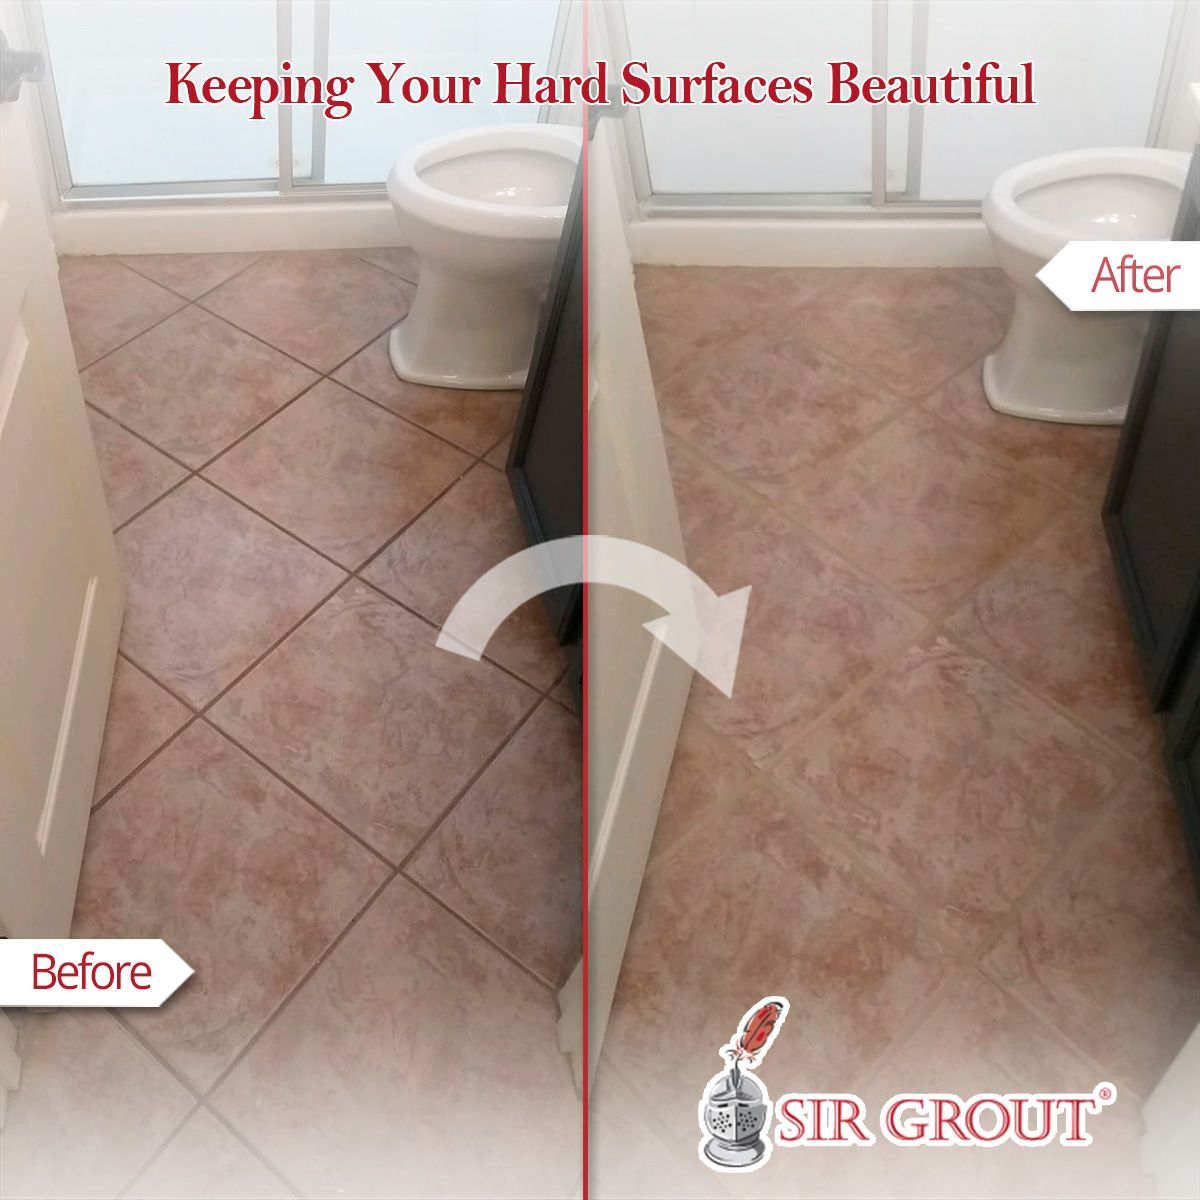 Keeping Your Hard Surfaces Beautiful